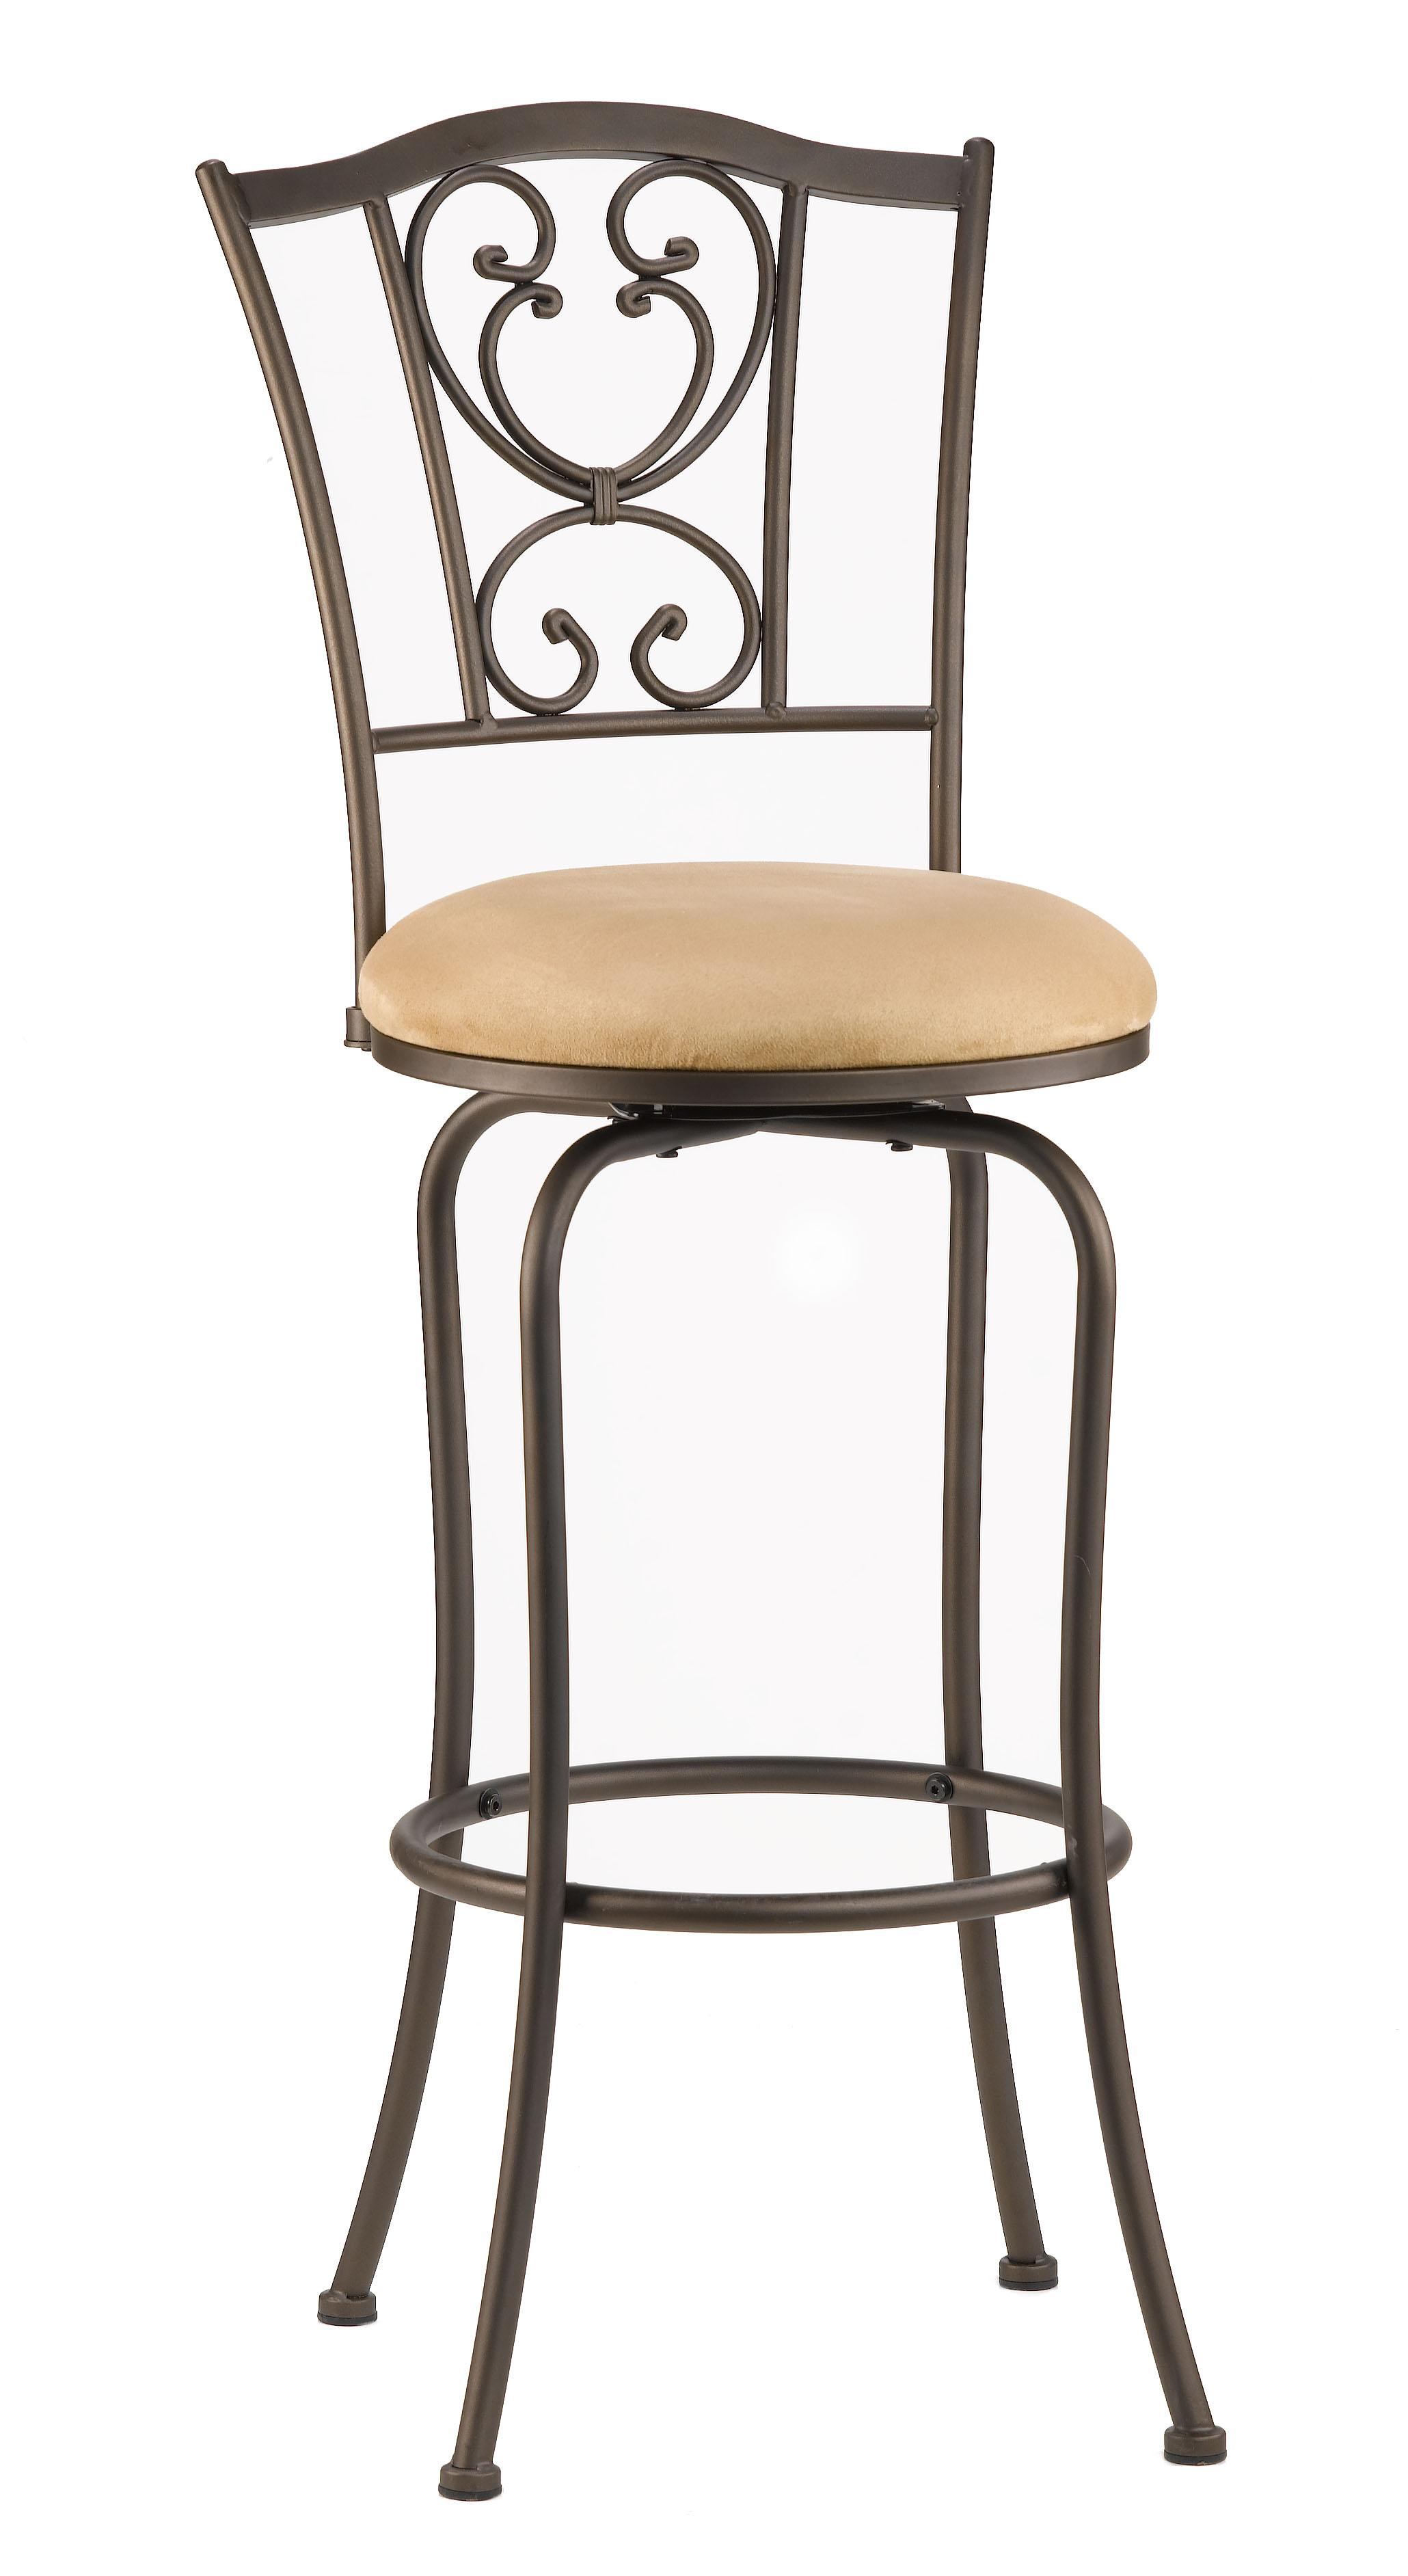 "Hillsdale Metal Stools 24"" Bar Height Swivel Stool - Item Number: 4120-821"